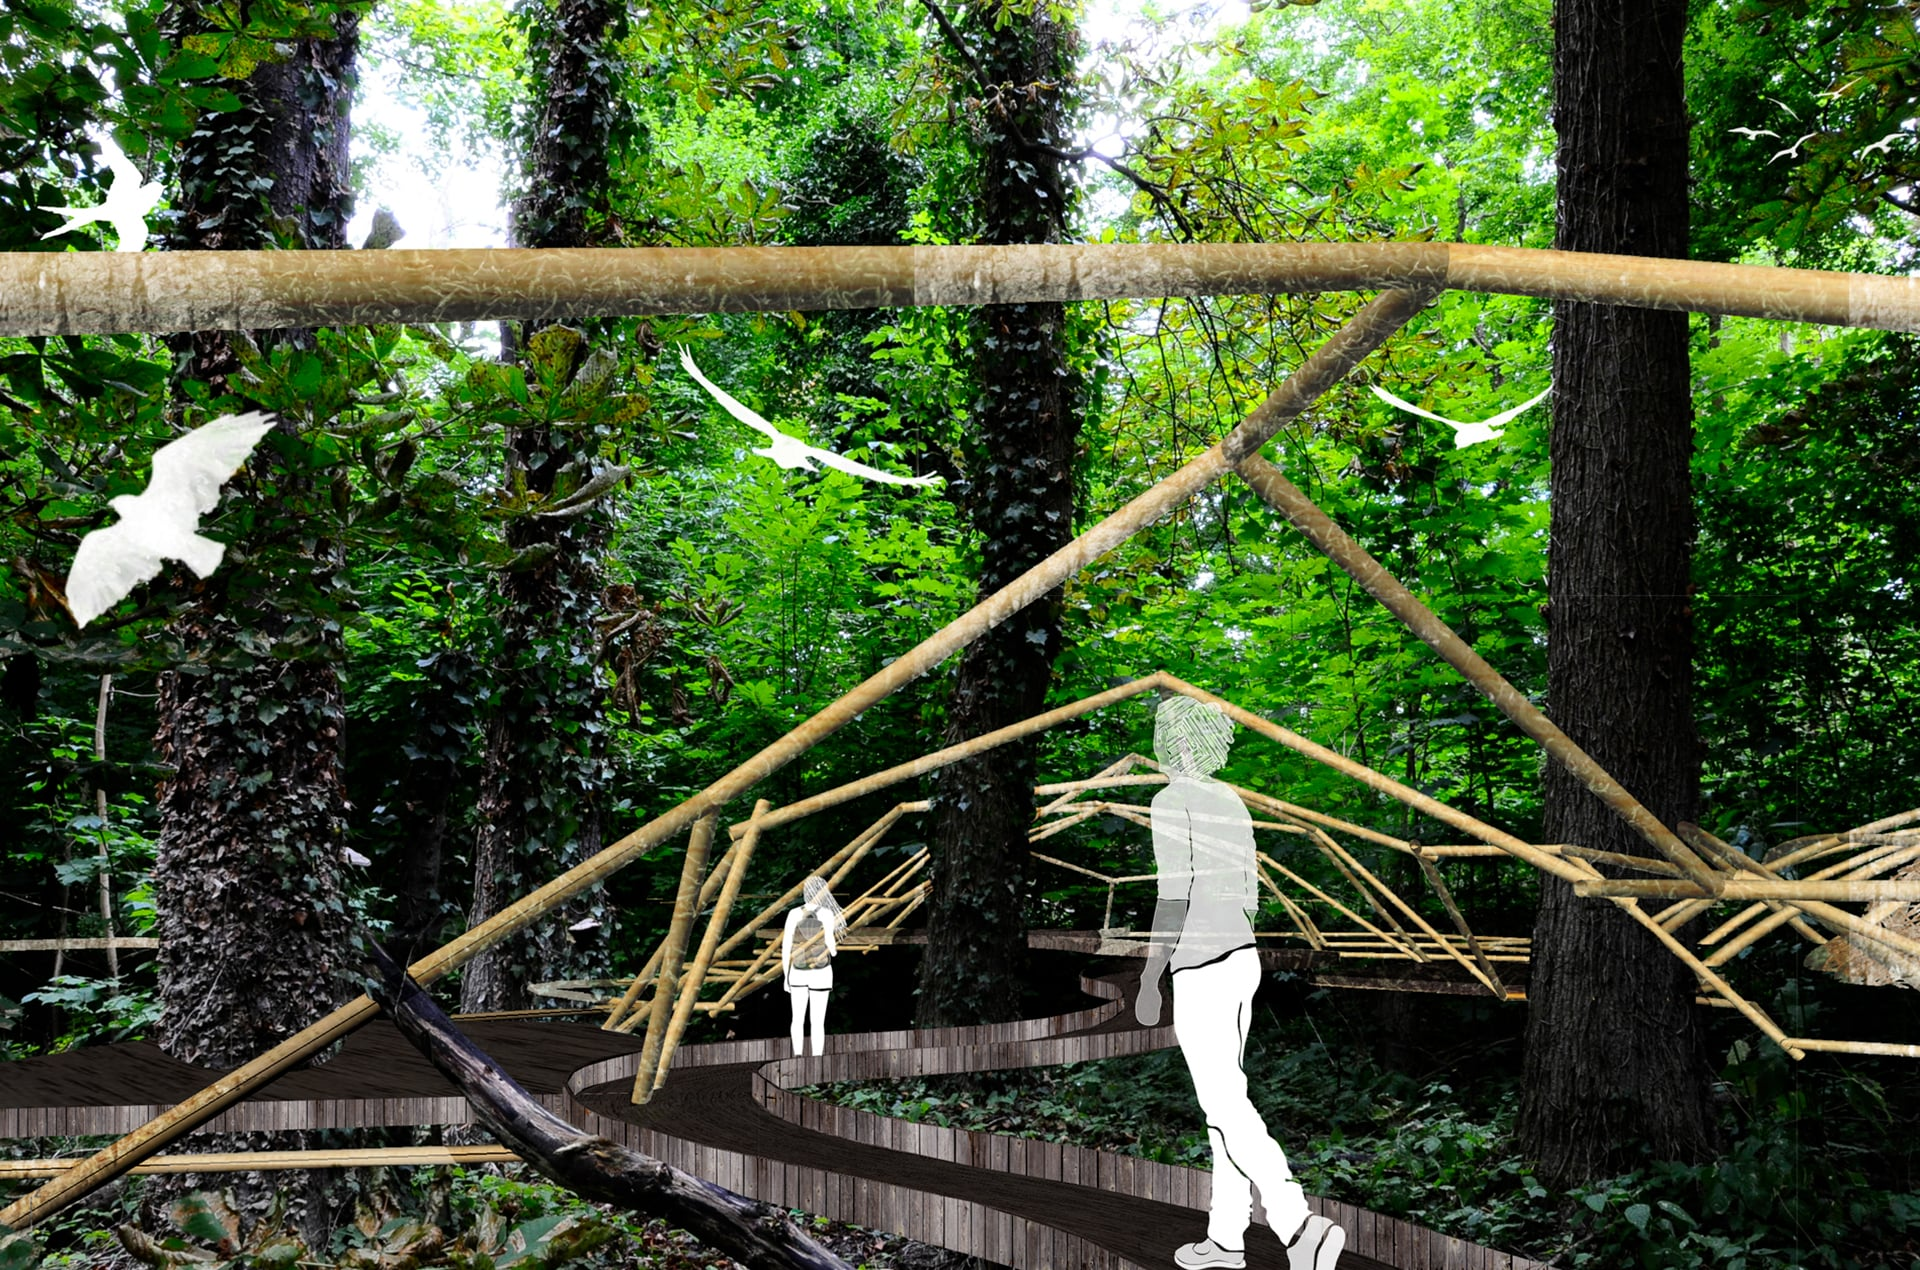 projet-sequence-personnage-foret-architecture